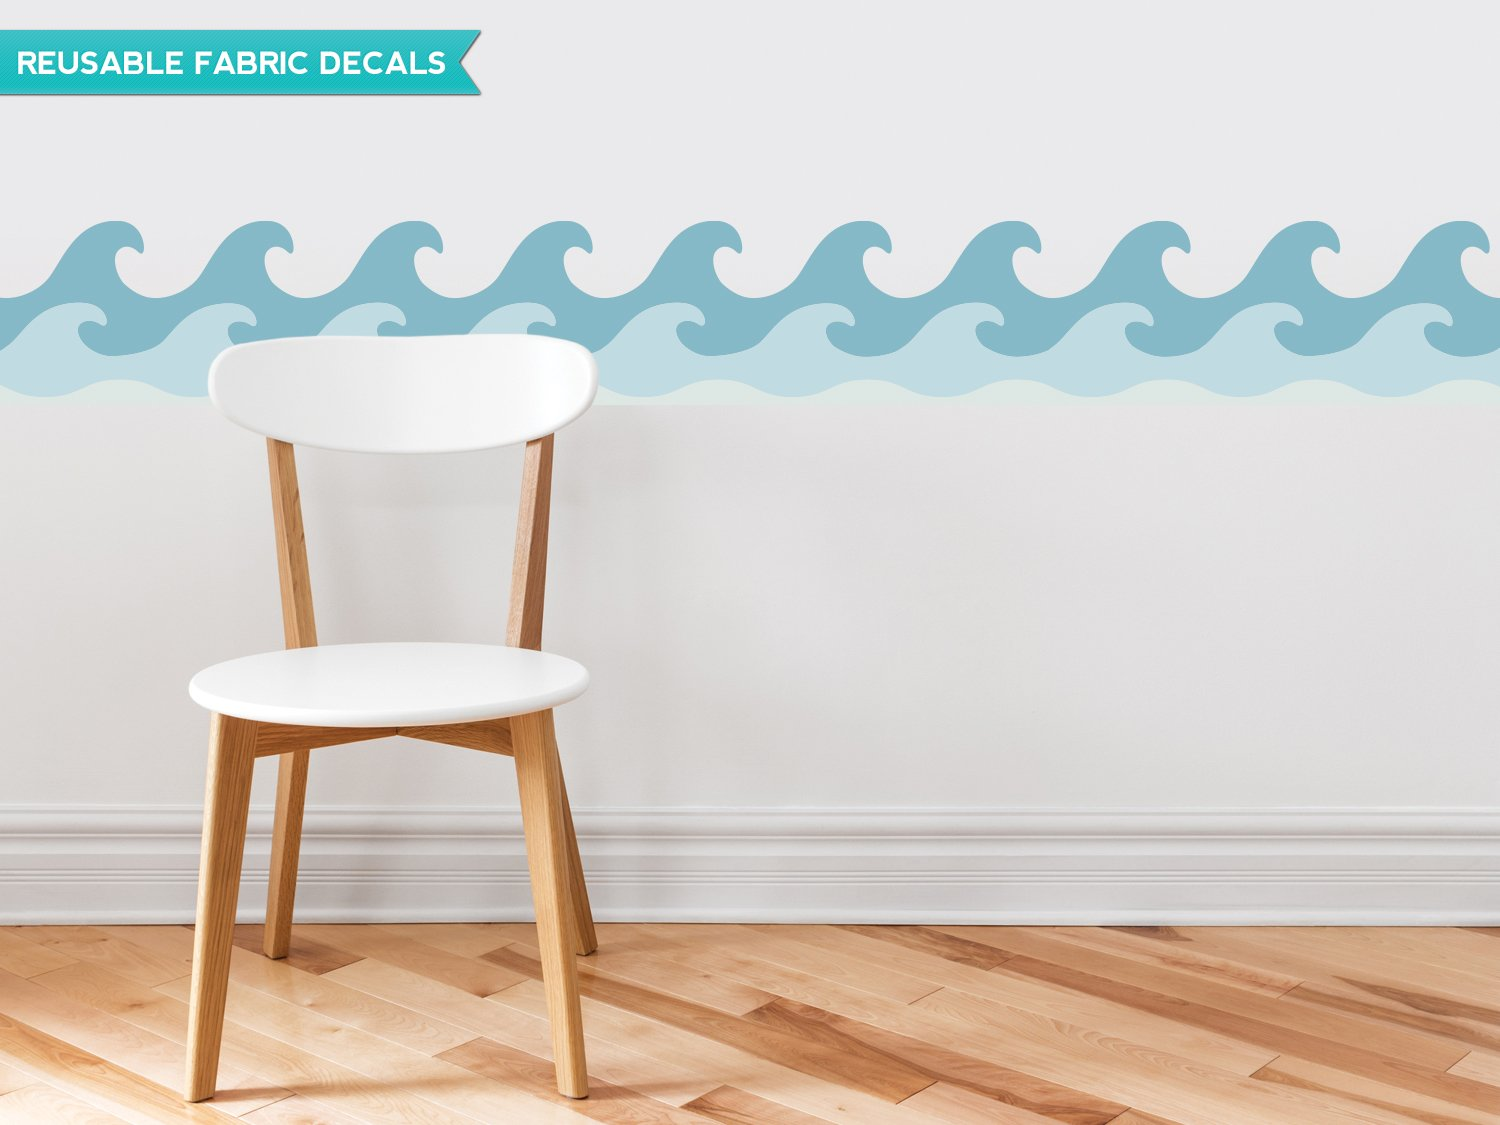 Amazon.com: Sunny Decals Wave Wall Border Fabric Wall Decal Set Of 2, 7.8